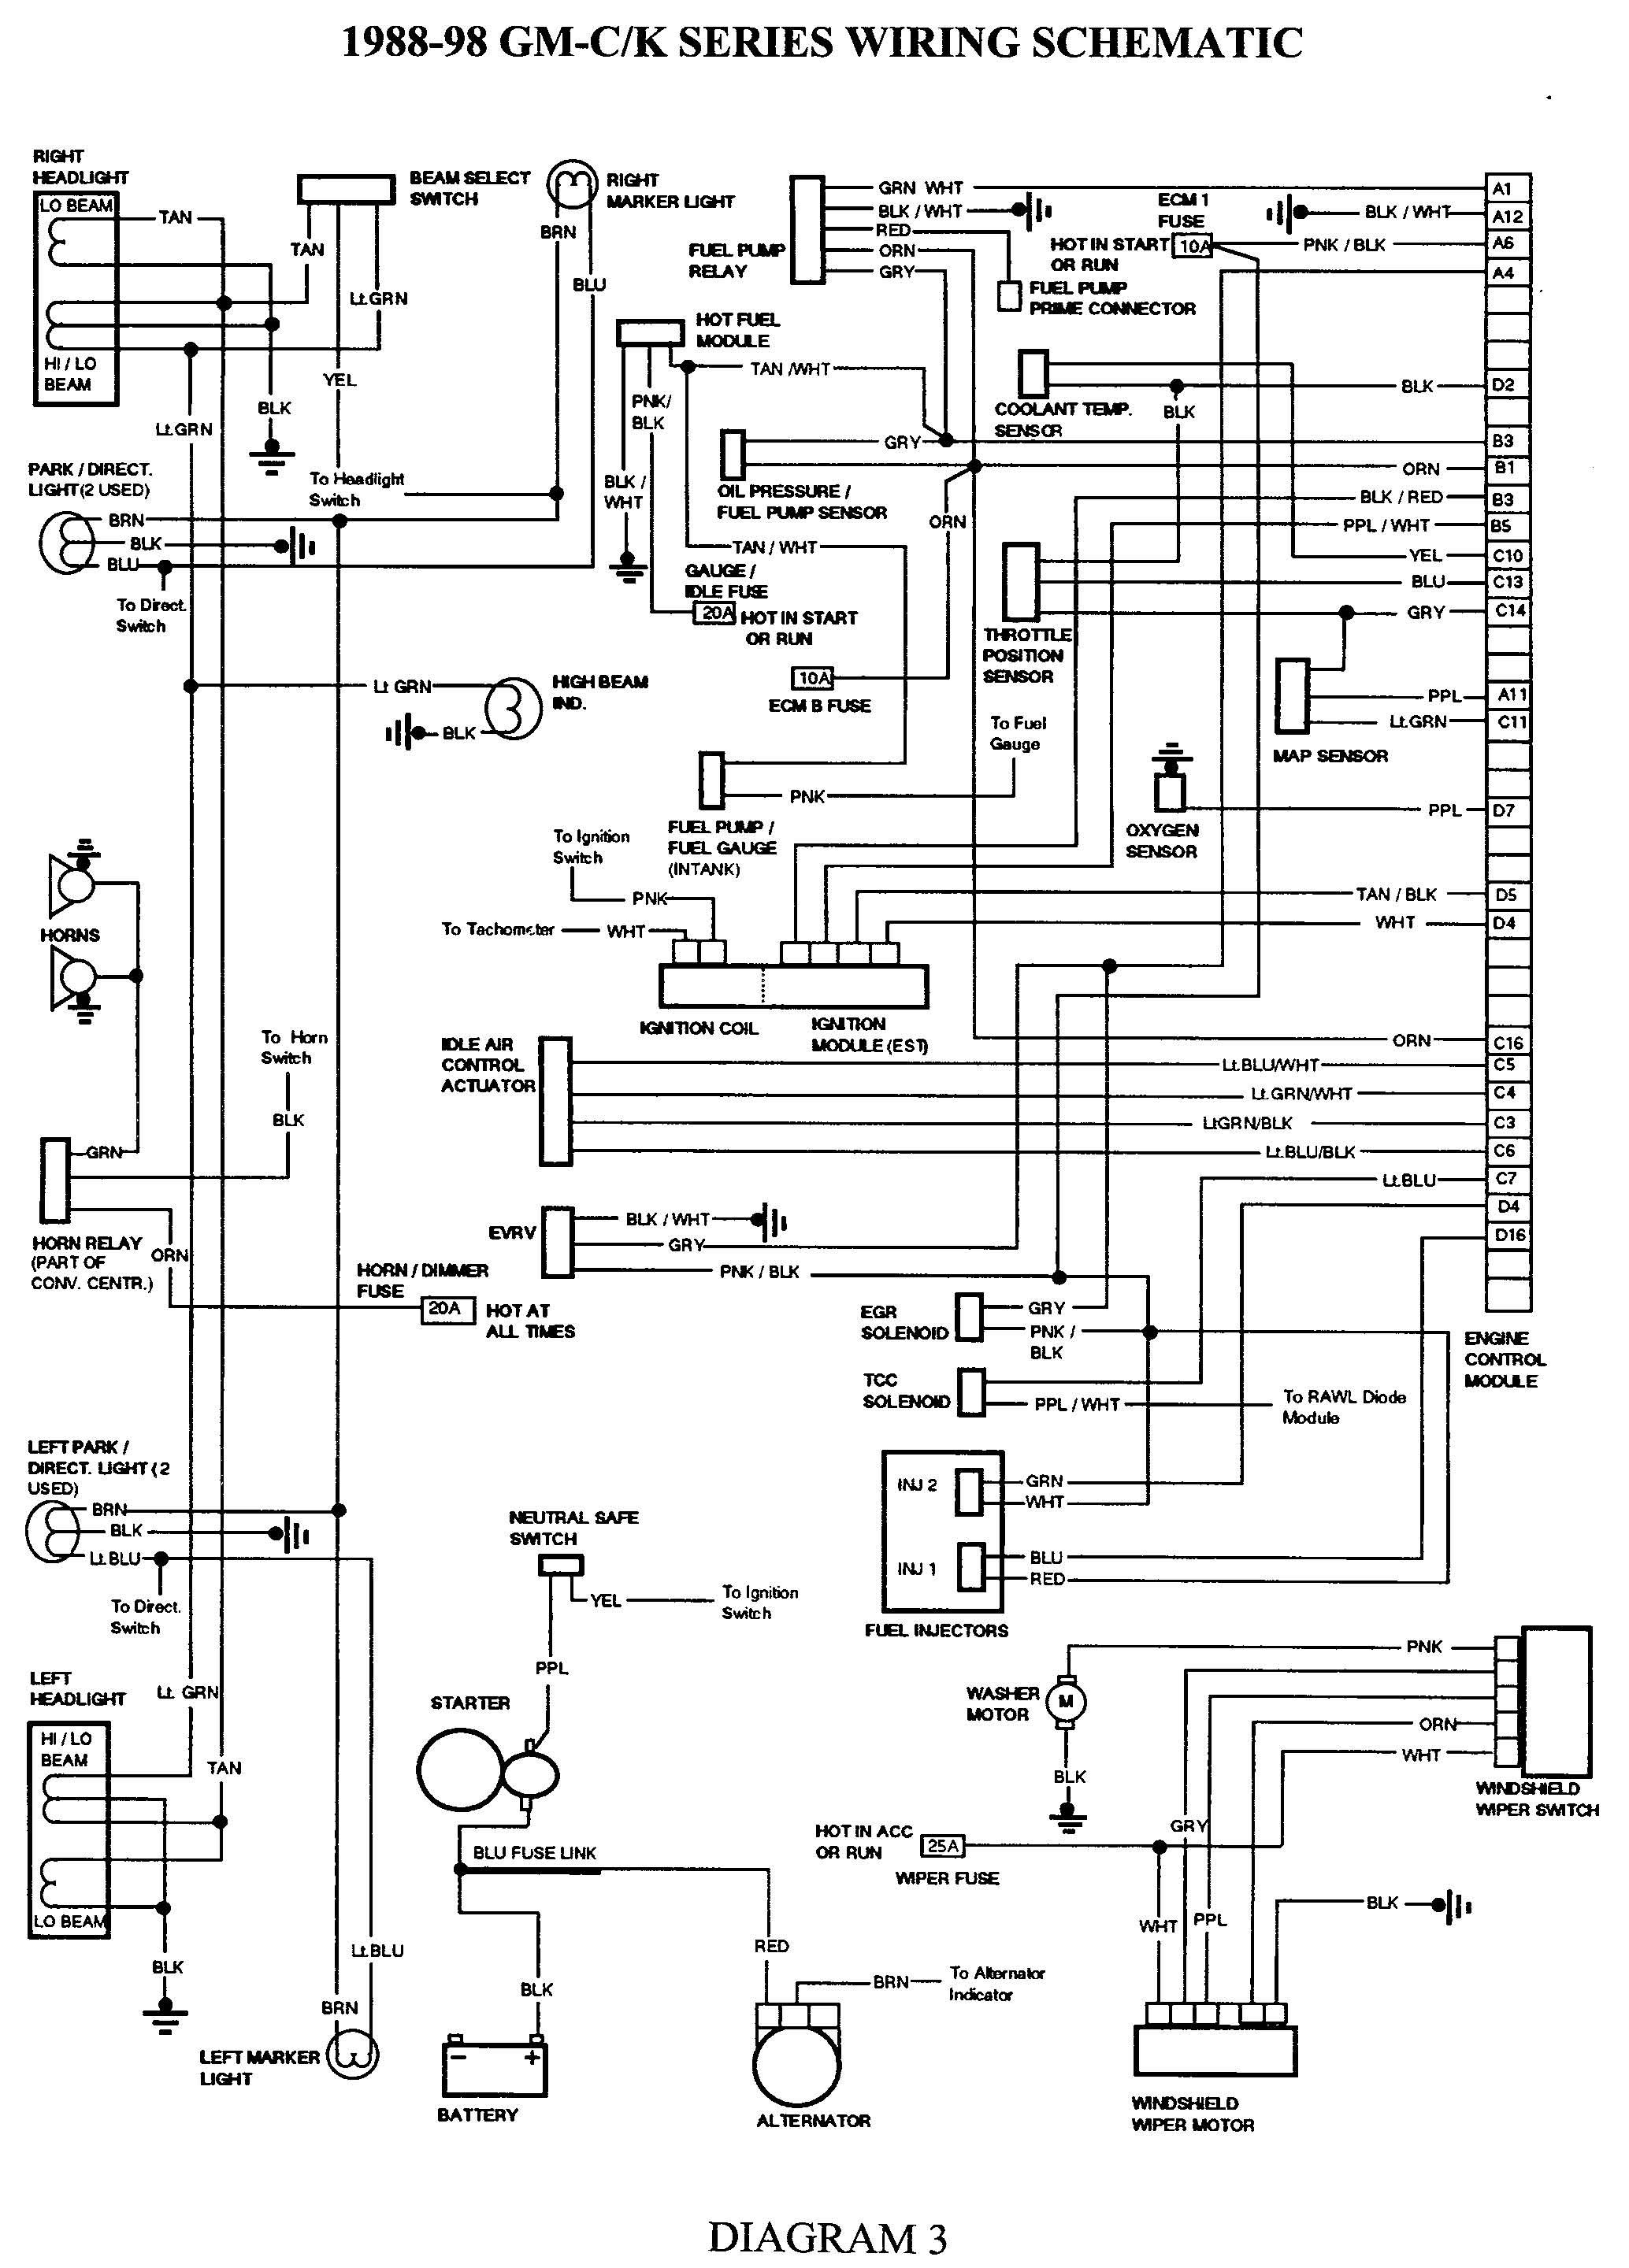 gmc truck wiring diagrams on gm wiring harness diagram 88 98 kc 1980 corvette wiring lights 98 corvette wiring diagram [ 2068 x 2880 Pixel ]